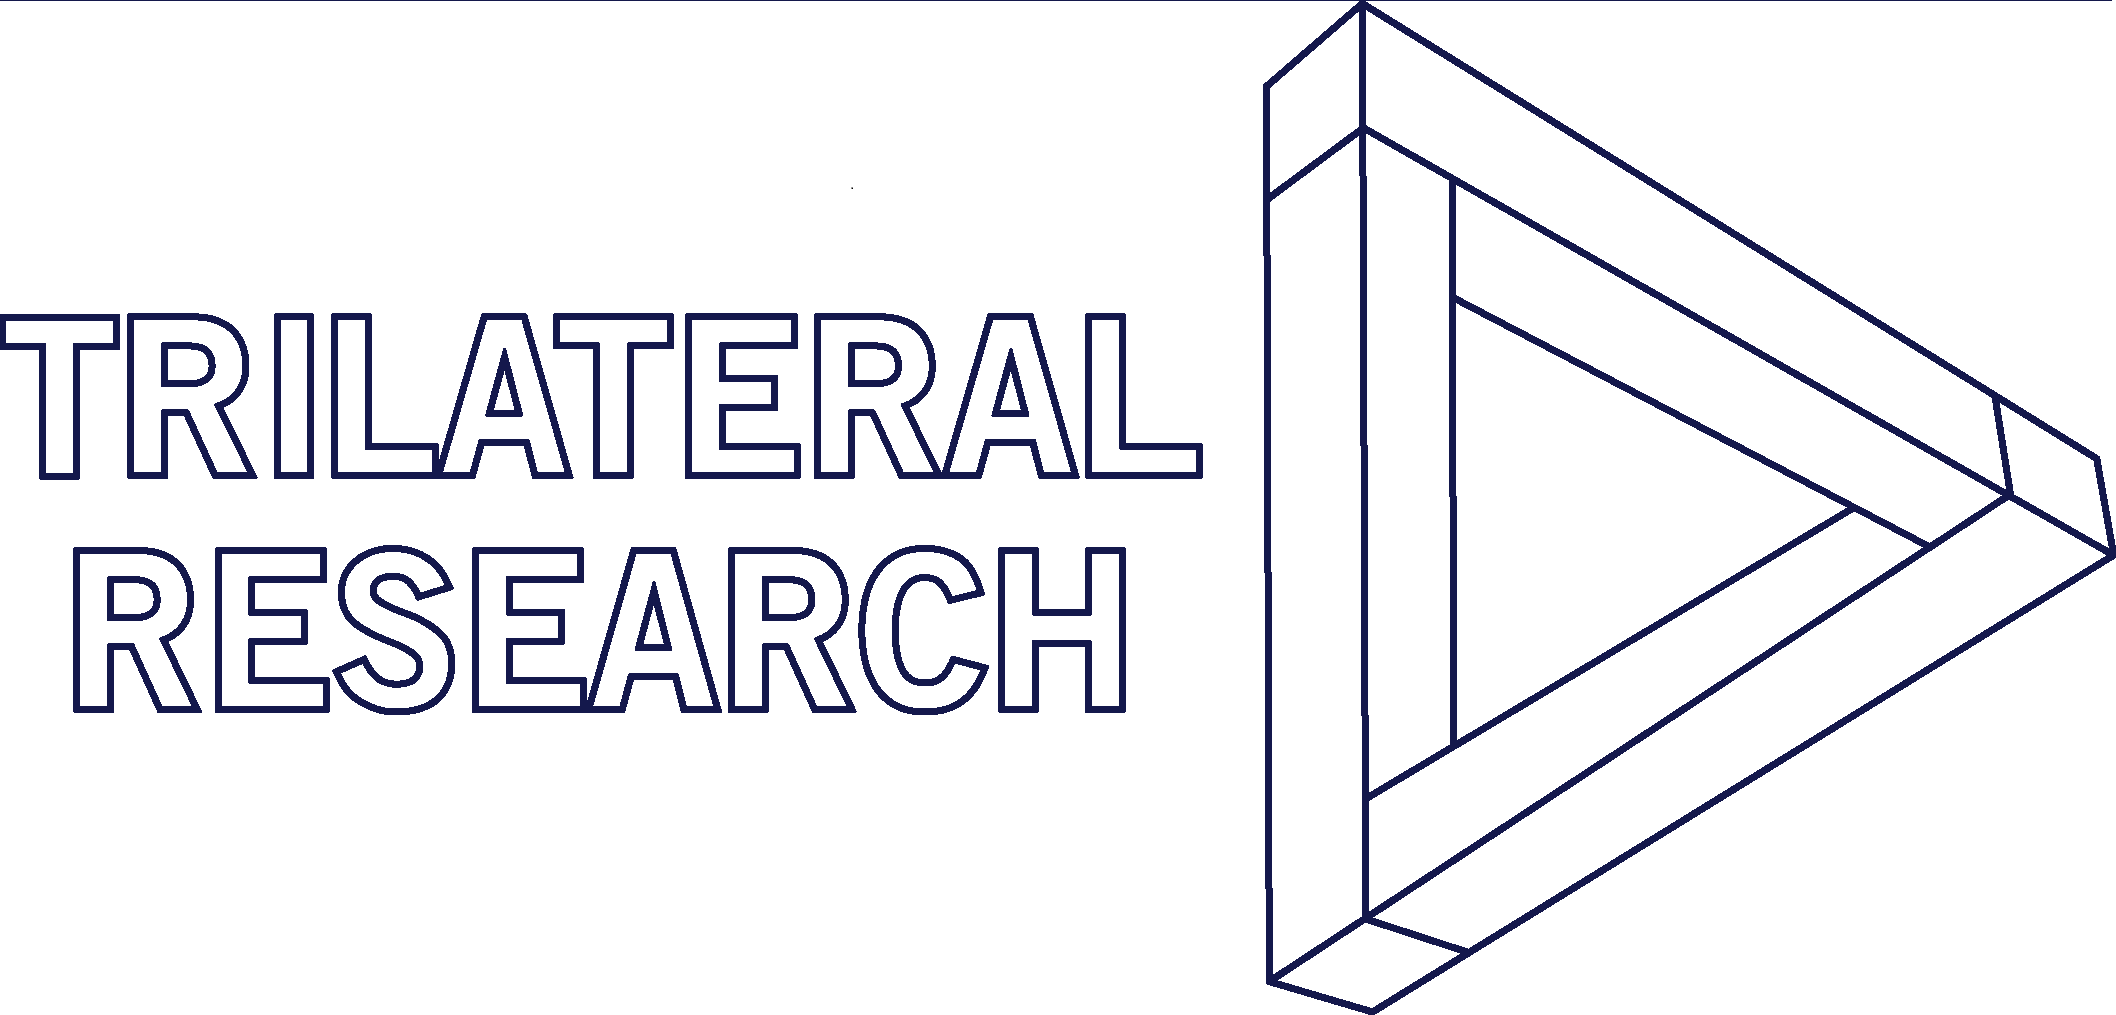 Trilateral Research LTD.